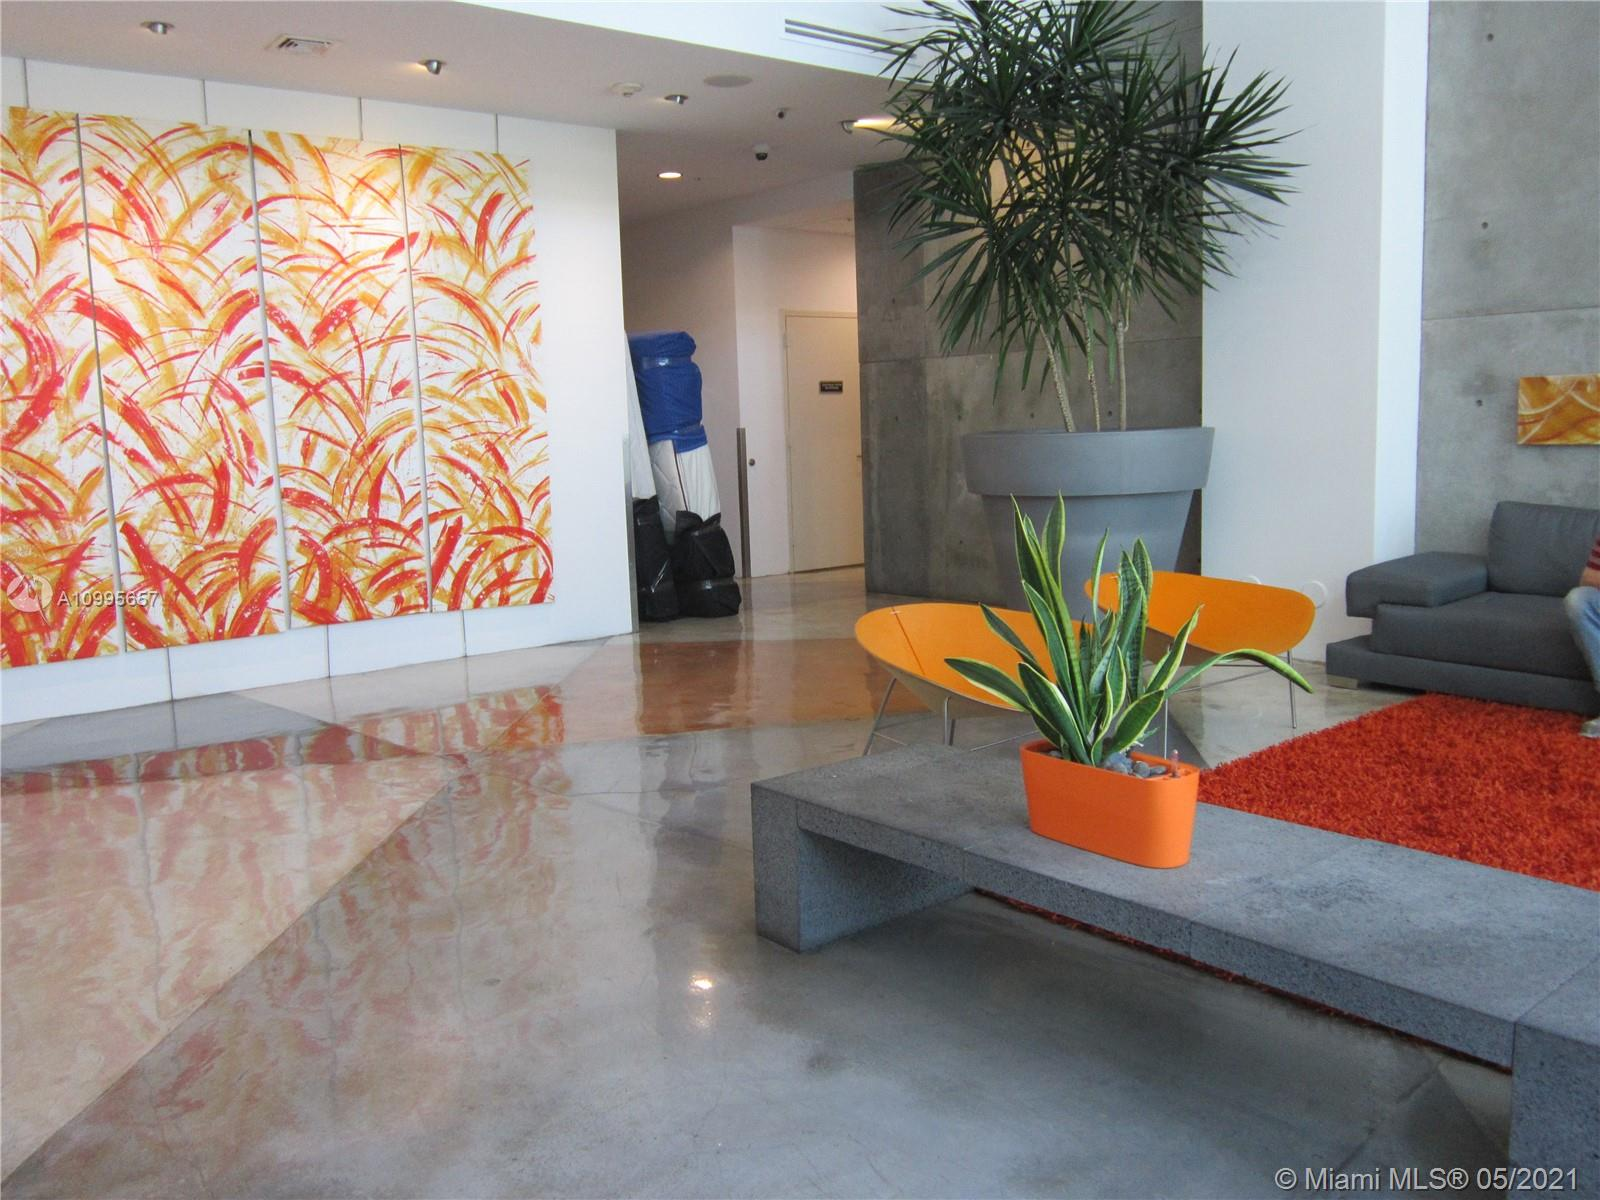 Amazing 1/1 loft-style, very modern kitchen, SS appliances, W/D in the unit, huge walk-in closet. Building offers security 24/7, pool, gym, sauna, and recreational room. Walking distance to Metro Mover, Miami Dade College, AA arena, Bayside, and downtown. A few minutes to Brickell shops & restaurants, South Beach, Coral Gables, Coconut Grove and Airport. One covered parking is available at ½ block from the building, at no additional cost. Desirable area for an investor, unit has always been rented and the location is impeccable. LOWEST PRICED UNIT IN THE BUILDING!!